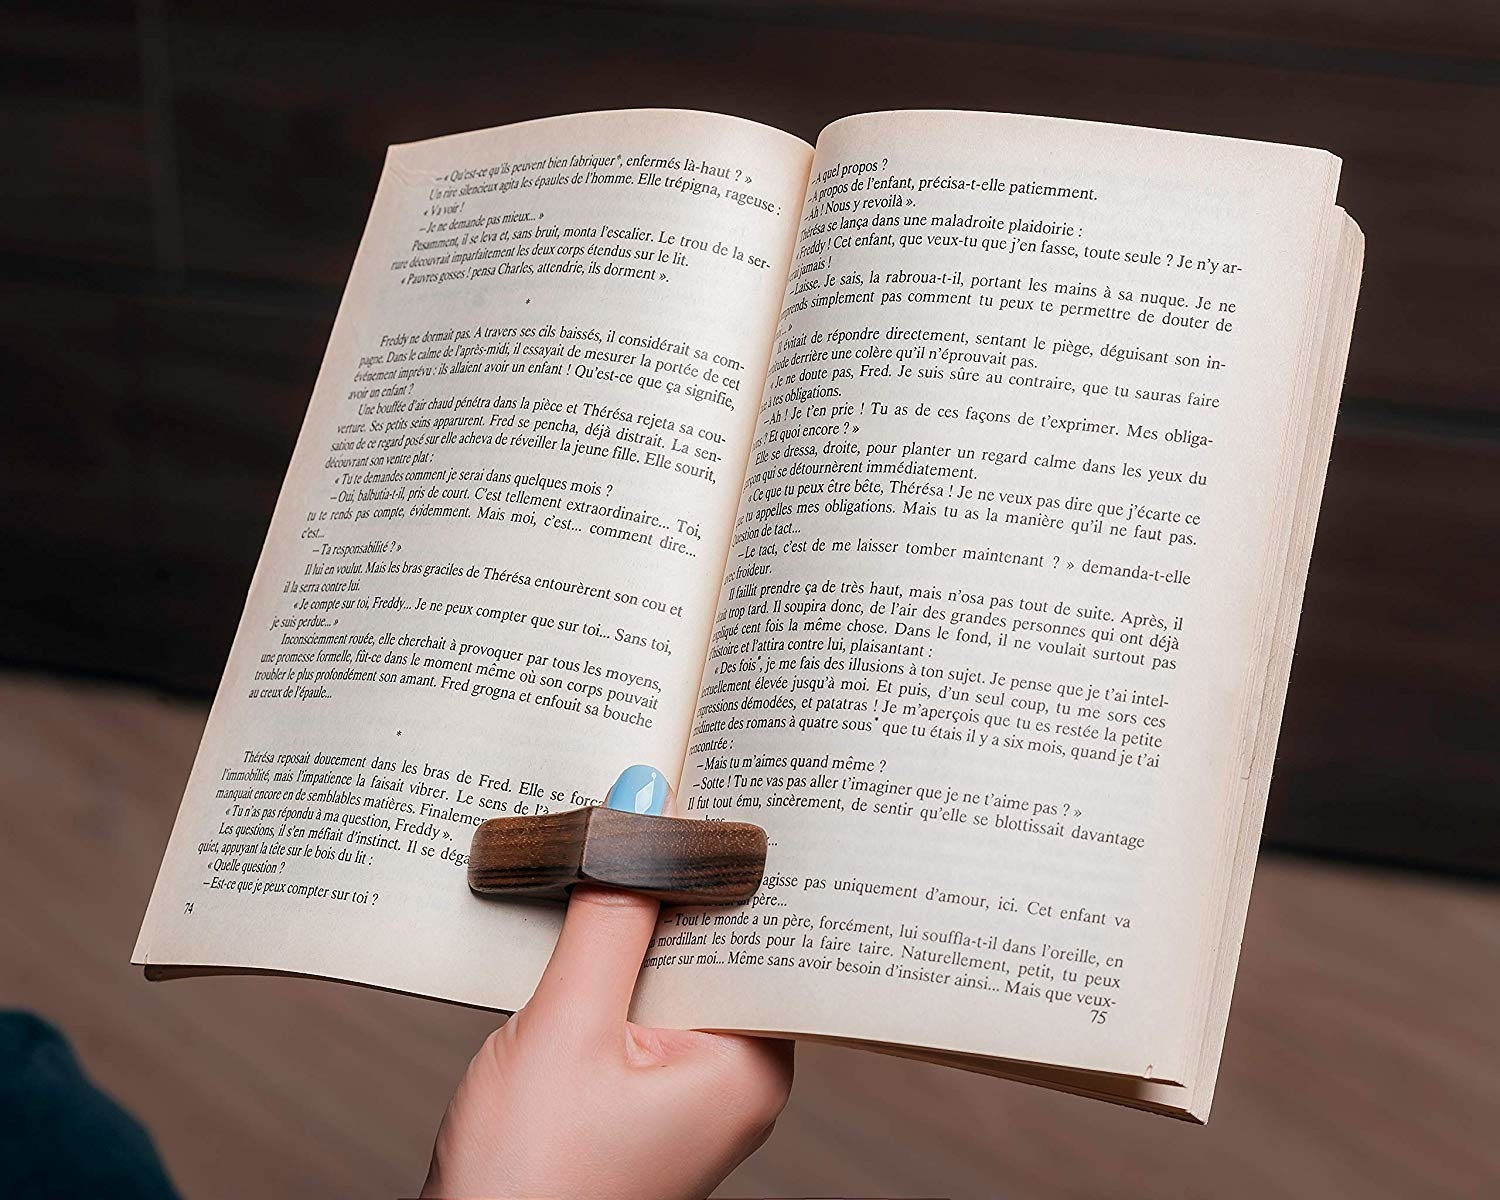 A person holding a book open with the a wooden diamond-shaped page holder